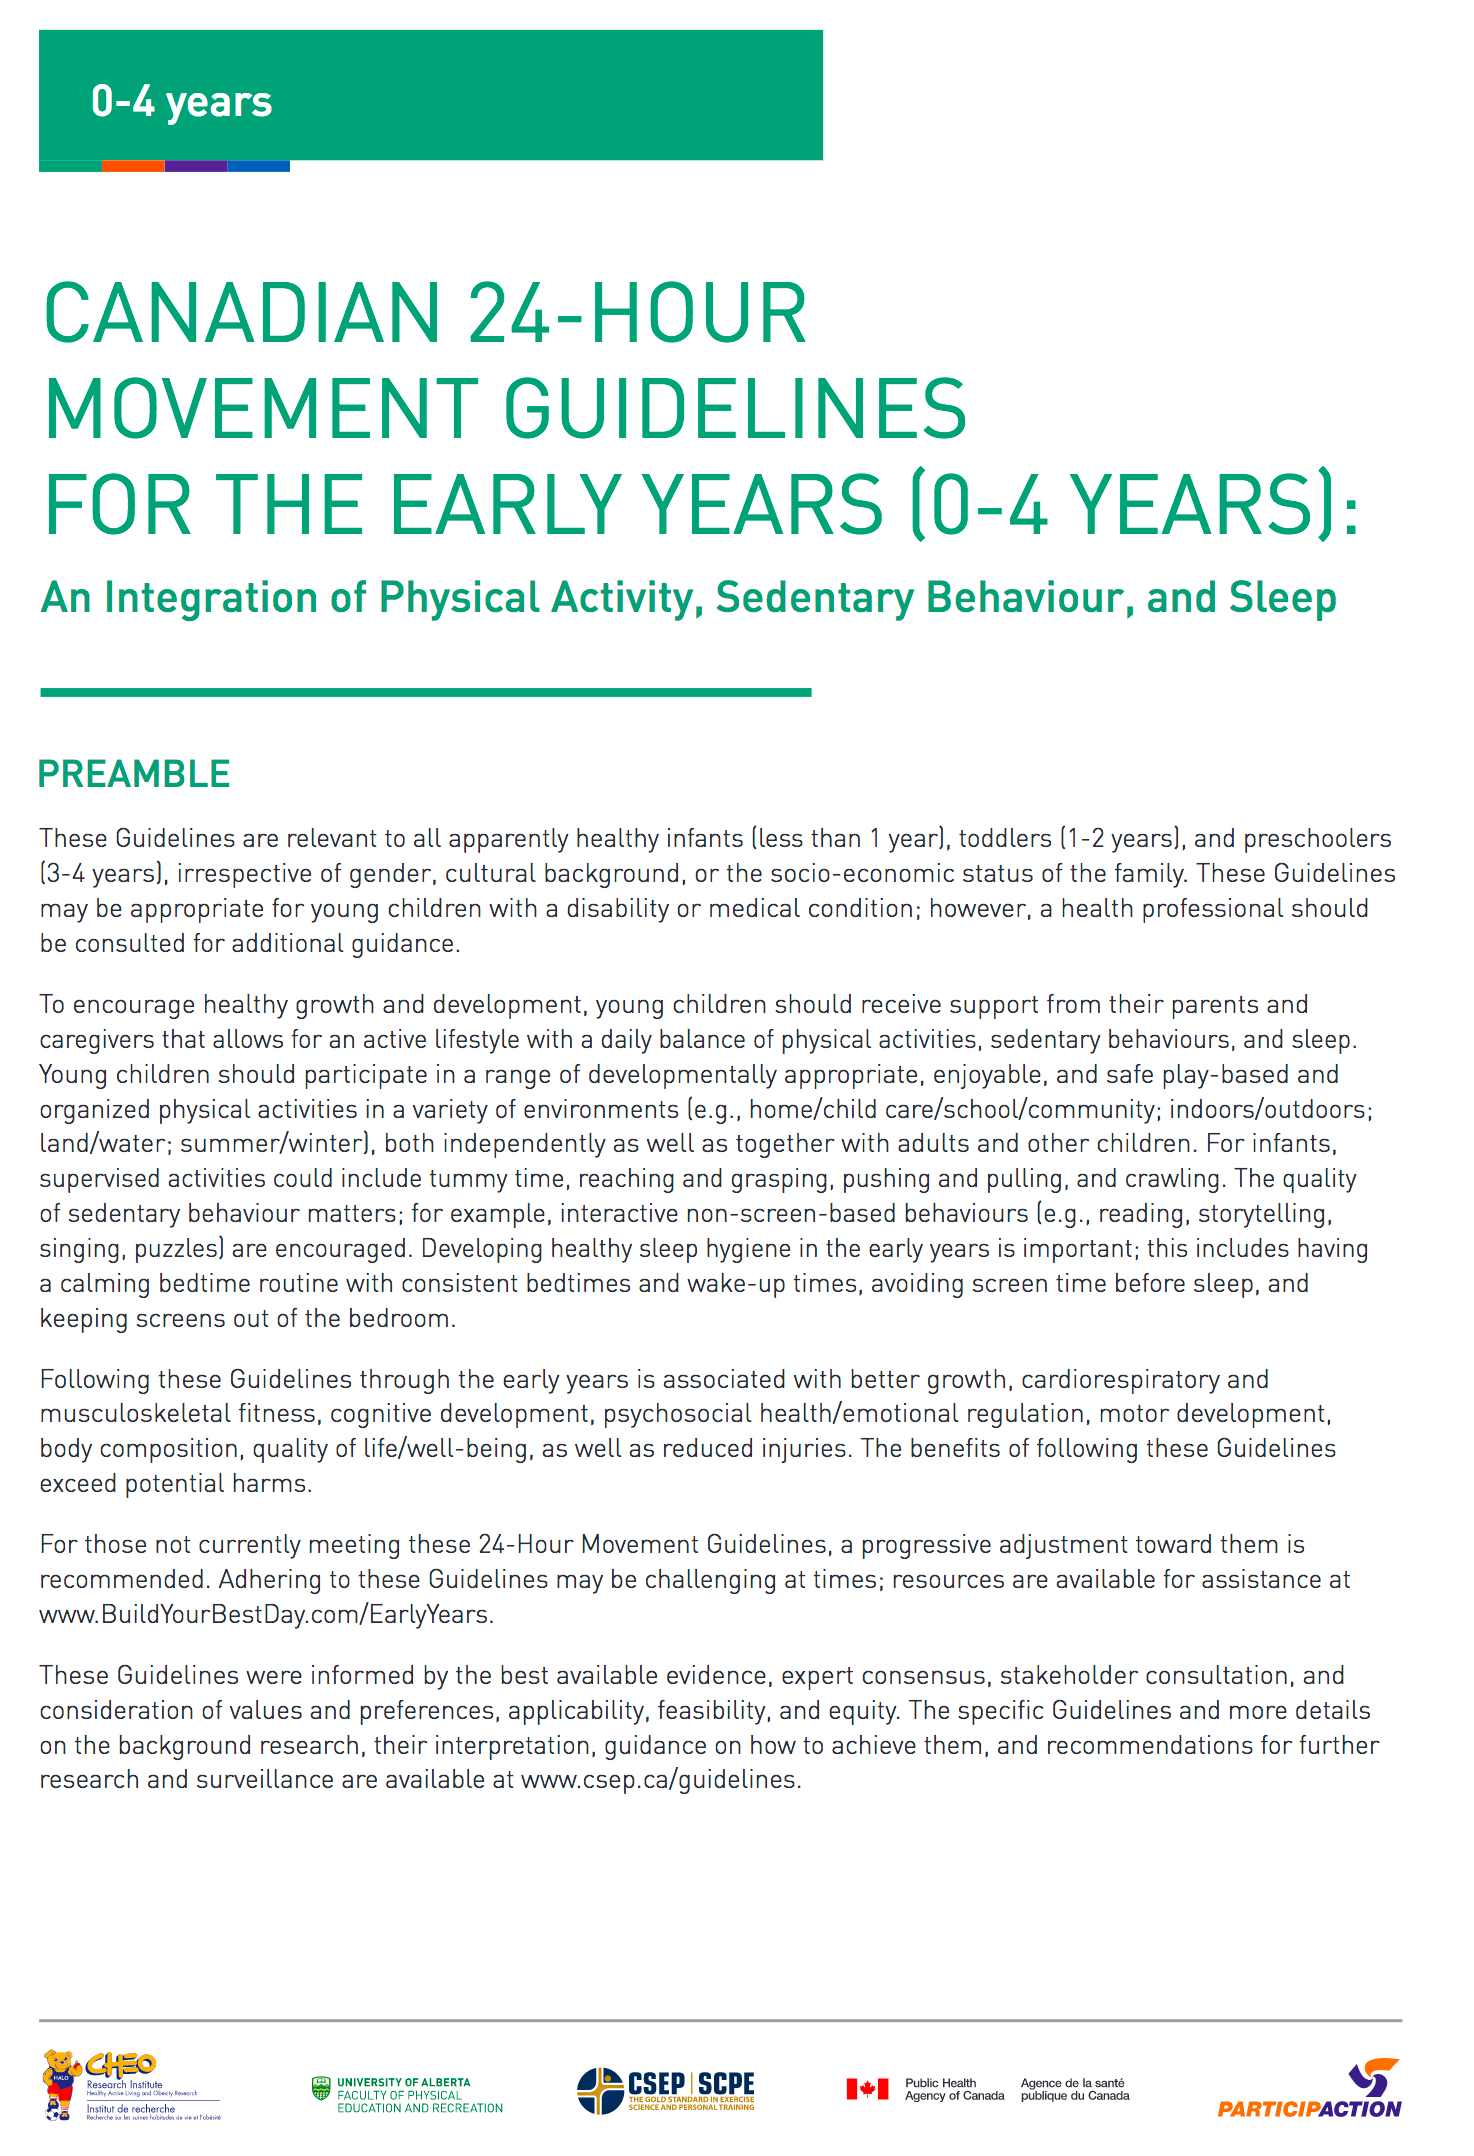 Canadian 24-Hour Movement Guidelines for the Early Years: Tear Sheets